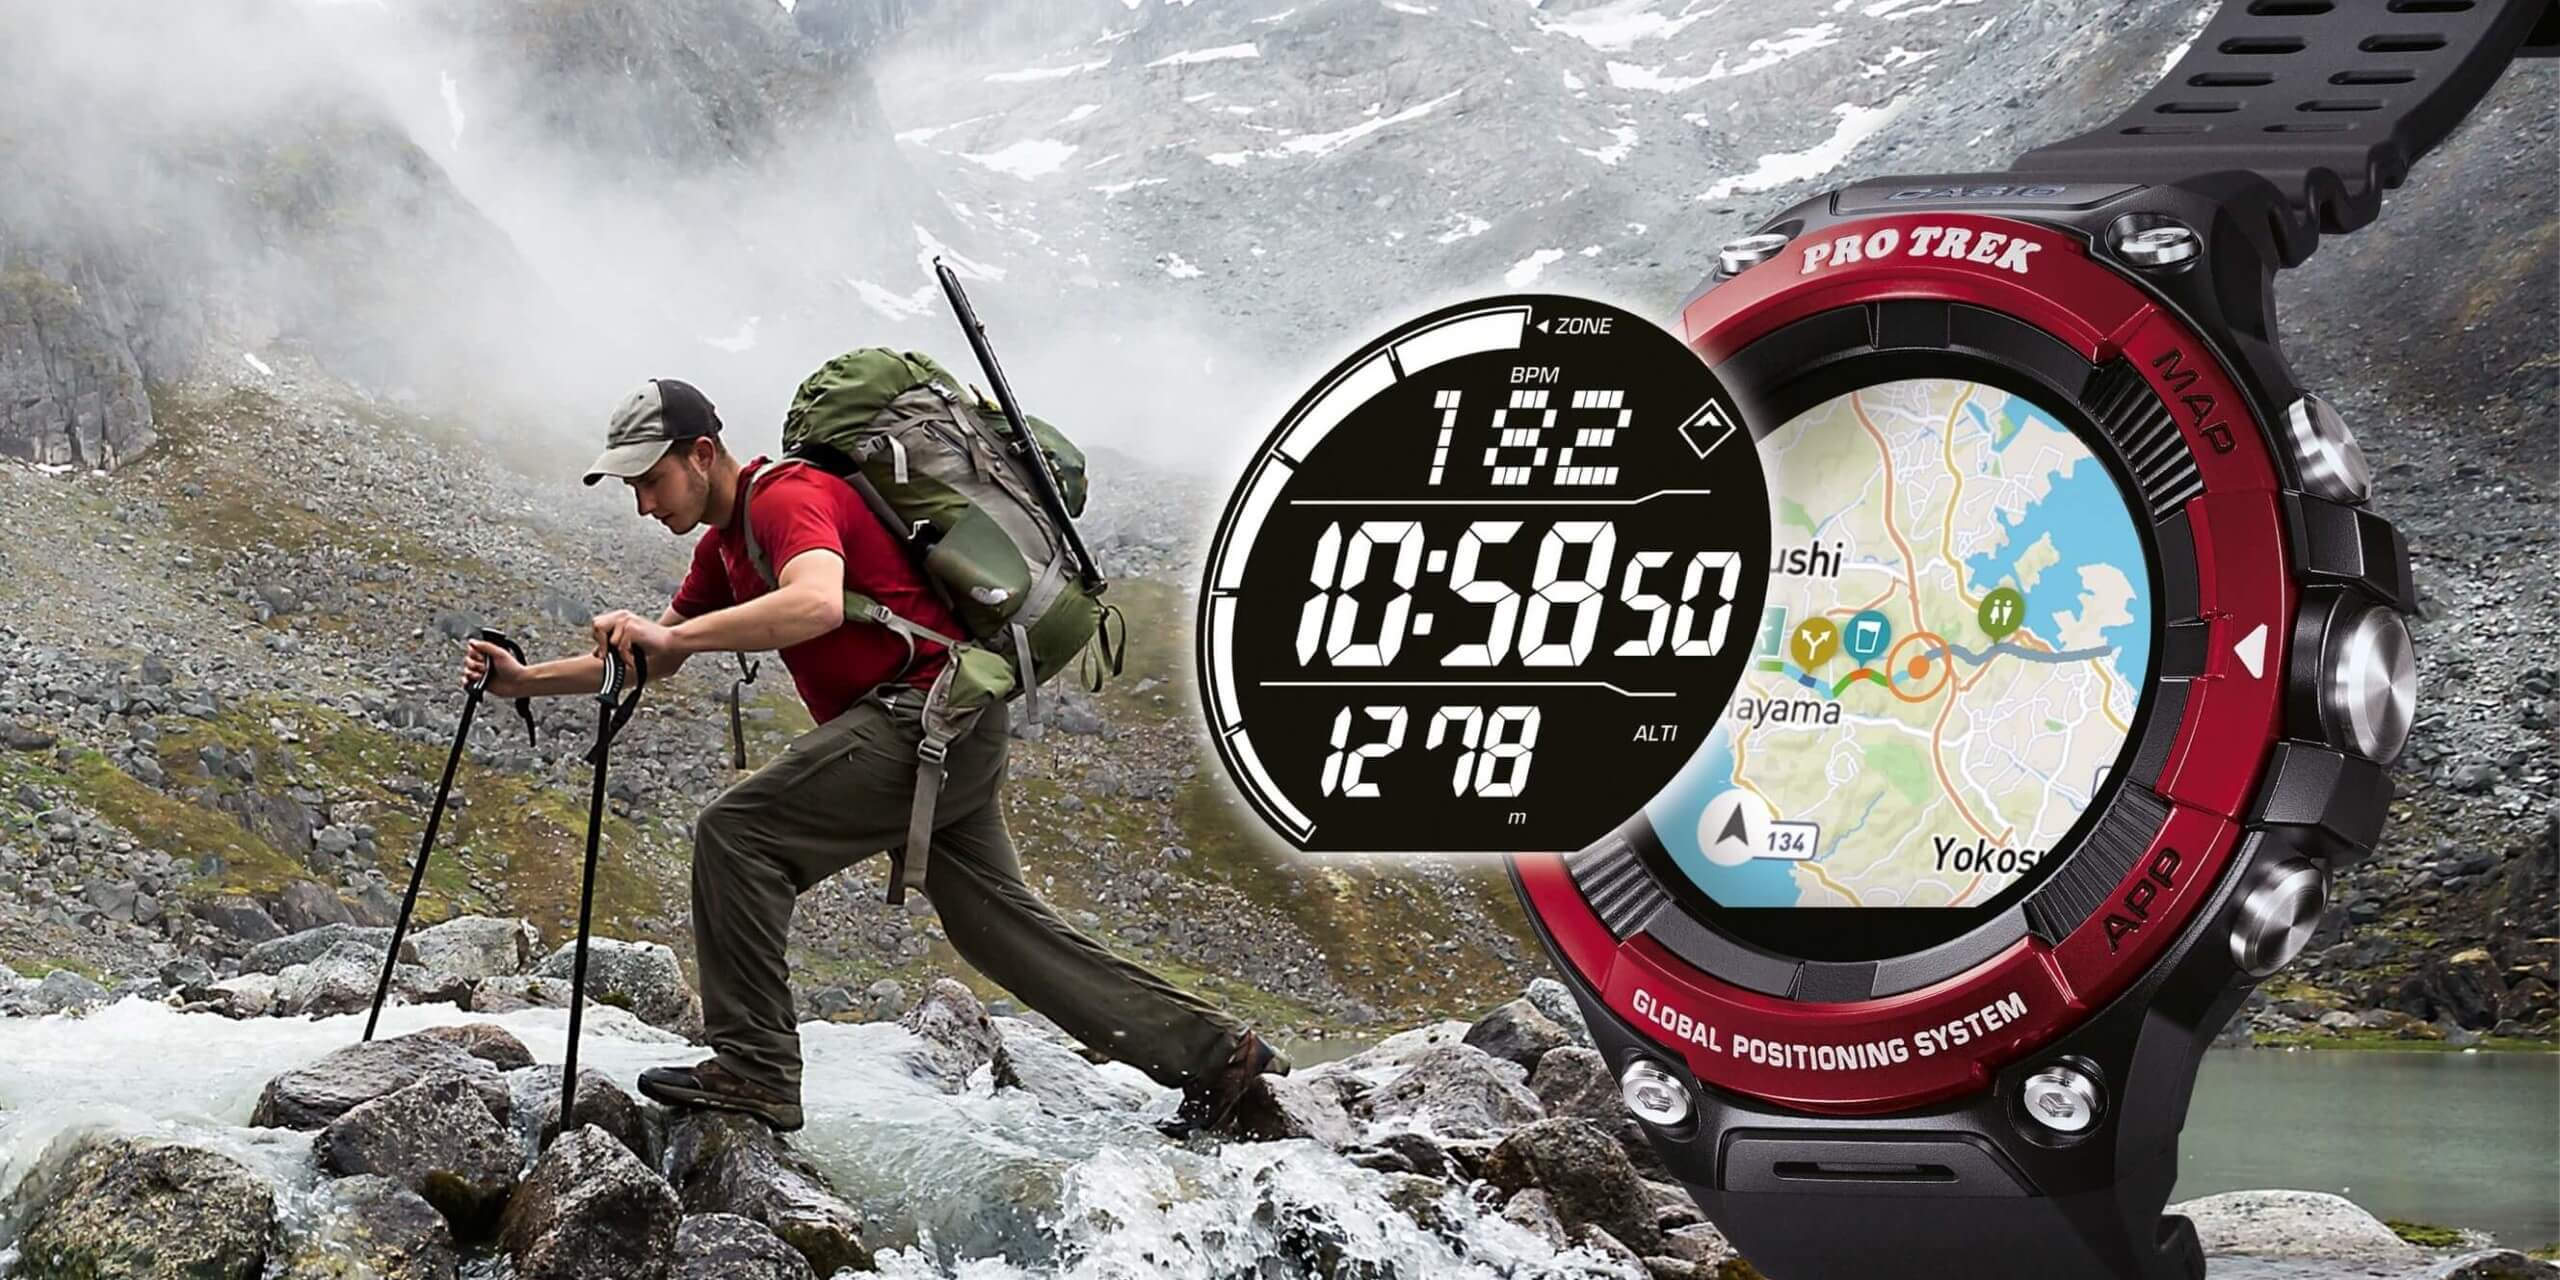 Tested by CAMPZ - Smartwatch Casio Pro Trek